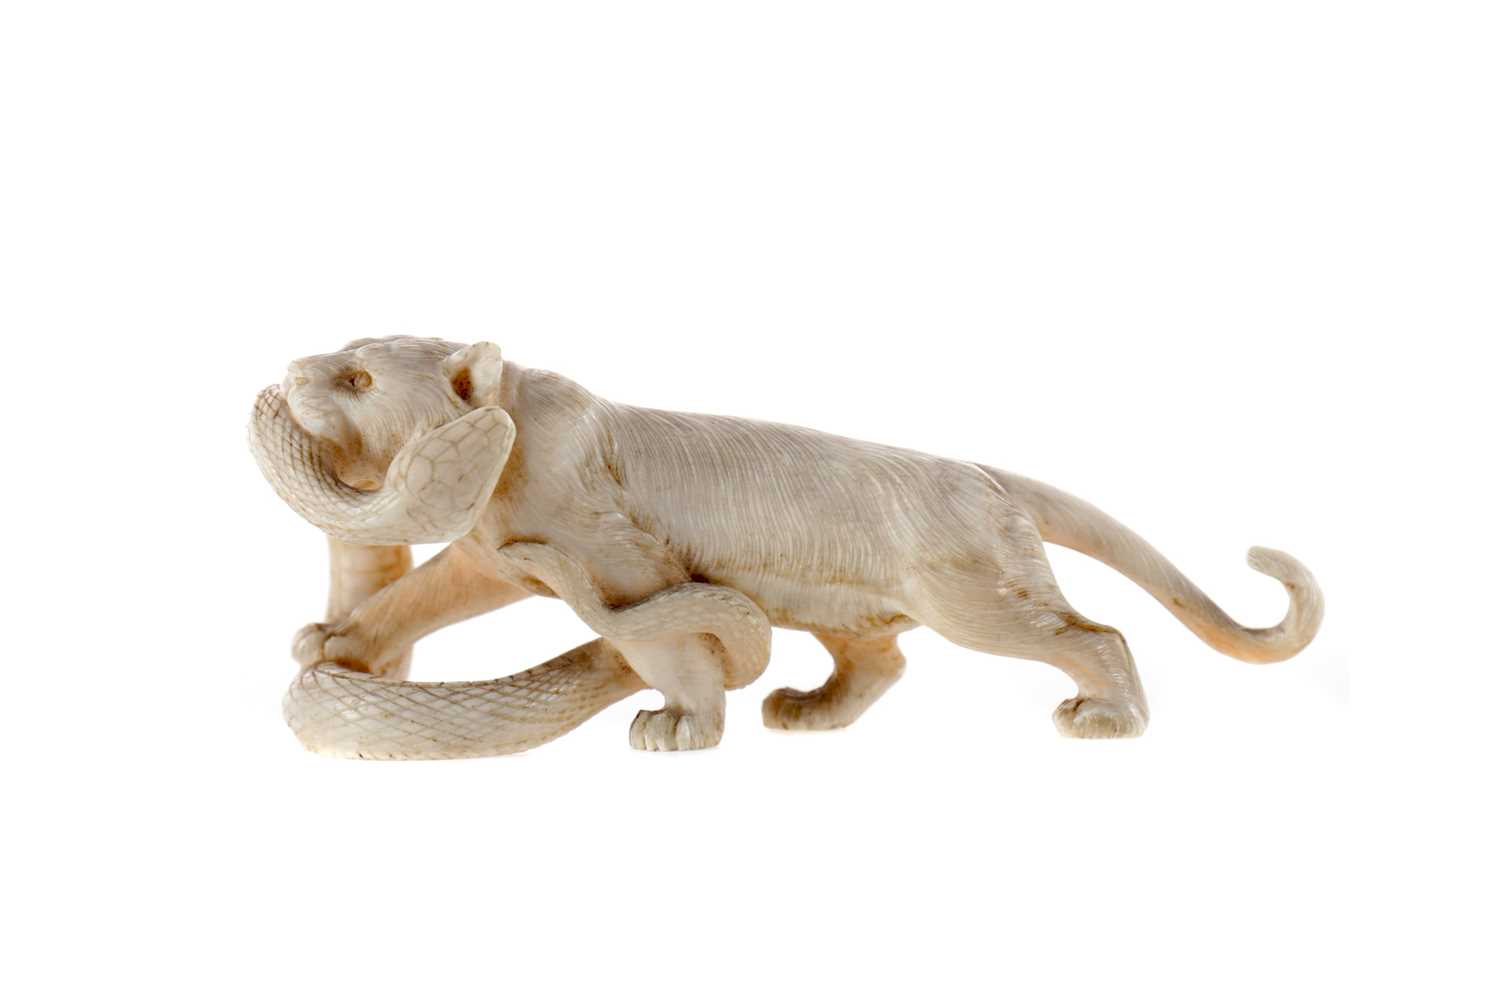 Lot 784 - AN EARLY 20TH CENTURY JAPANESE IVORY CARVING OF A TIGER AND SNAKE